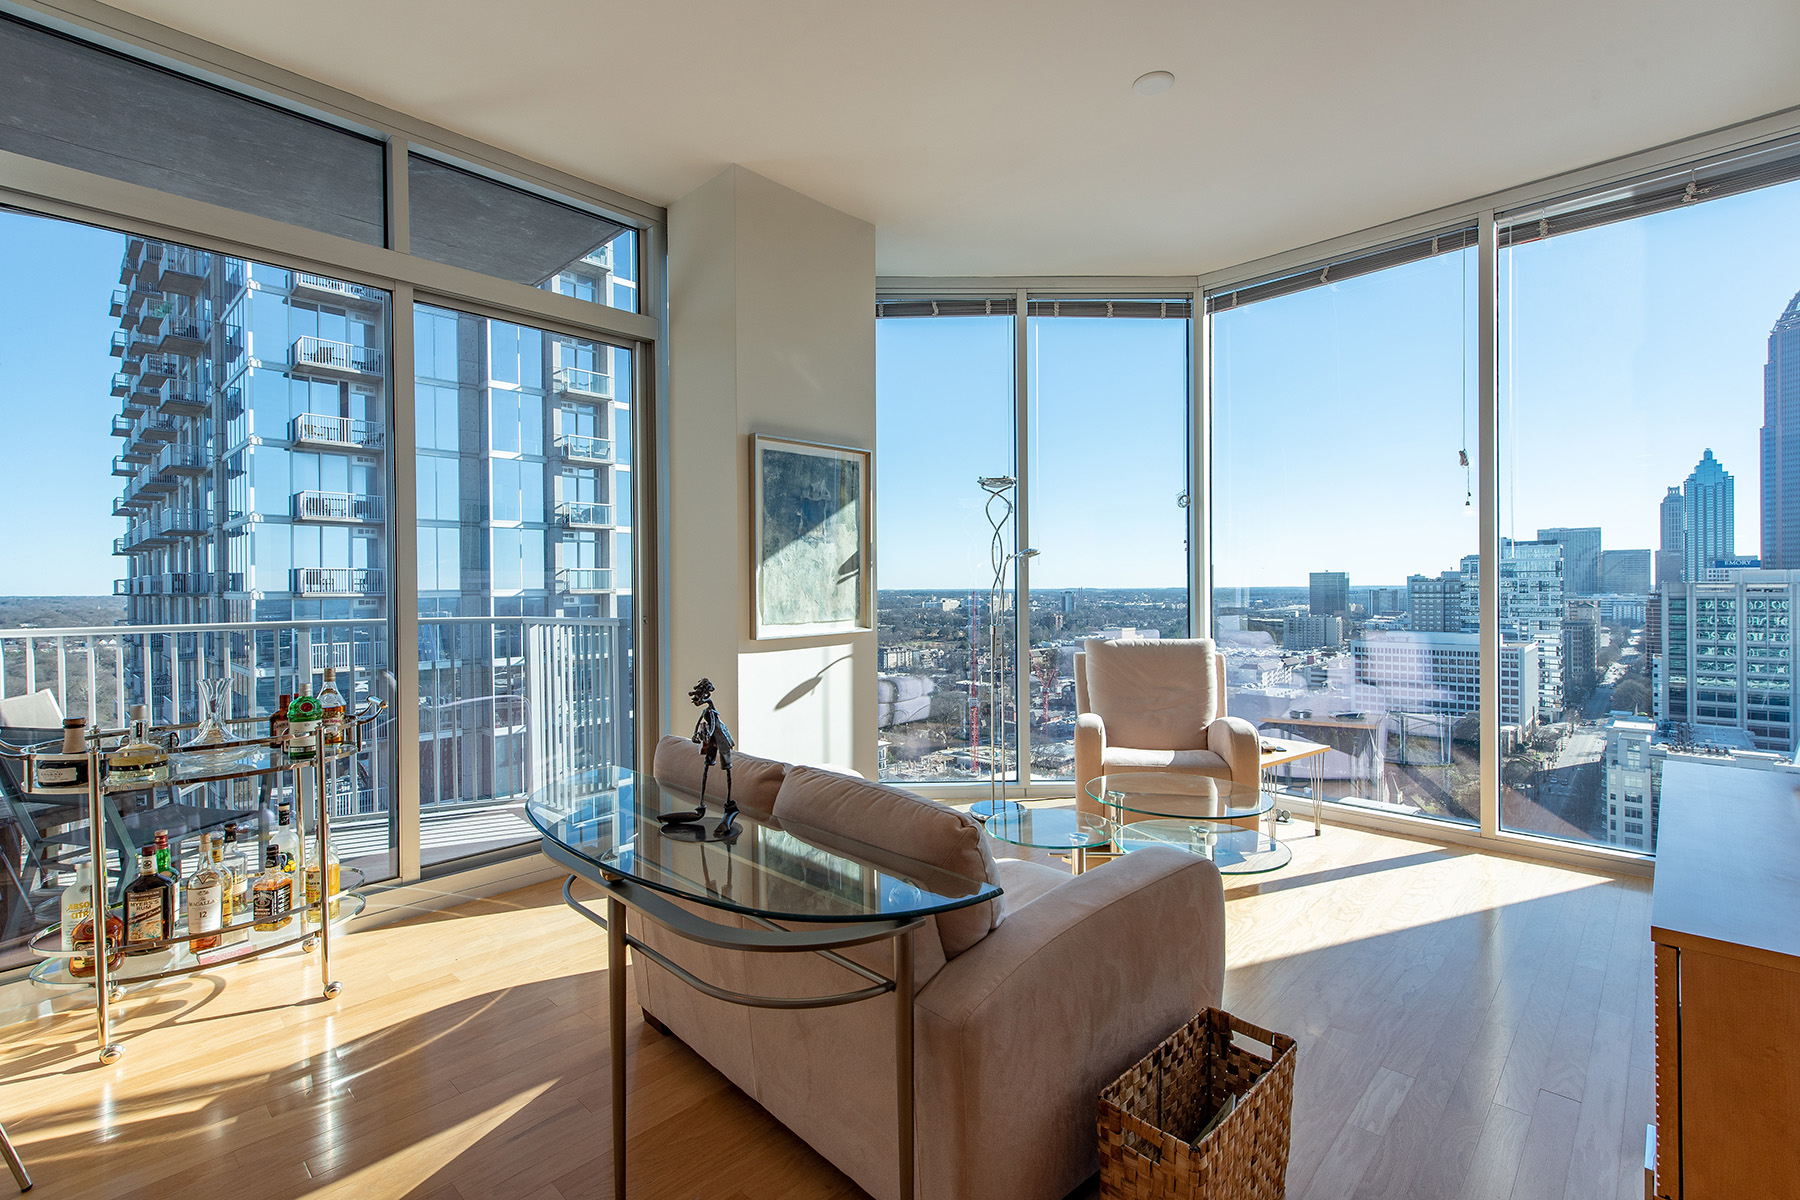 Condominium for Sale at Sophisticated Midtown Modern with Extraordinary Views 860 Peachtree St 2302 Atlanta, Georgia 30308 United States